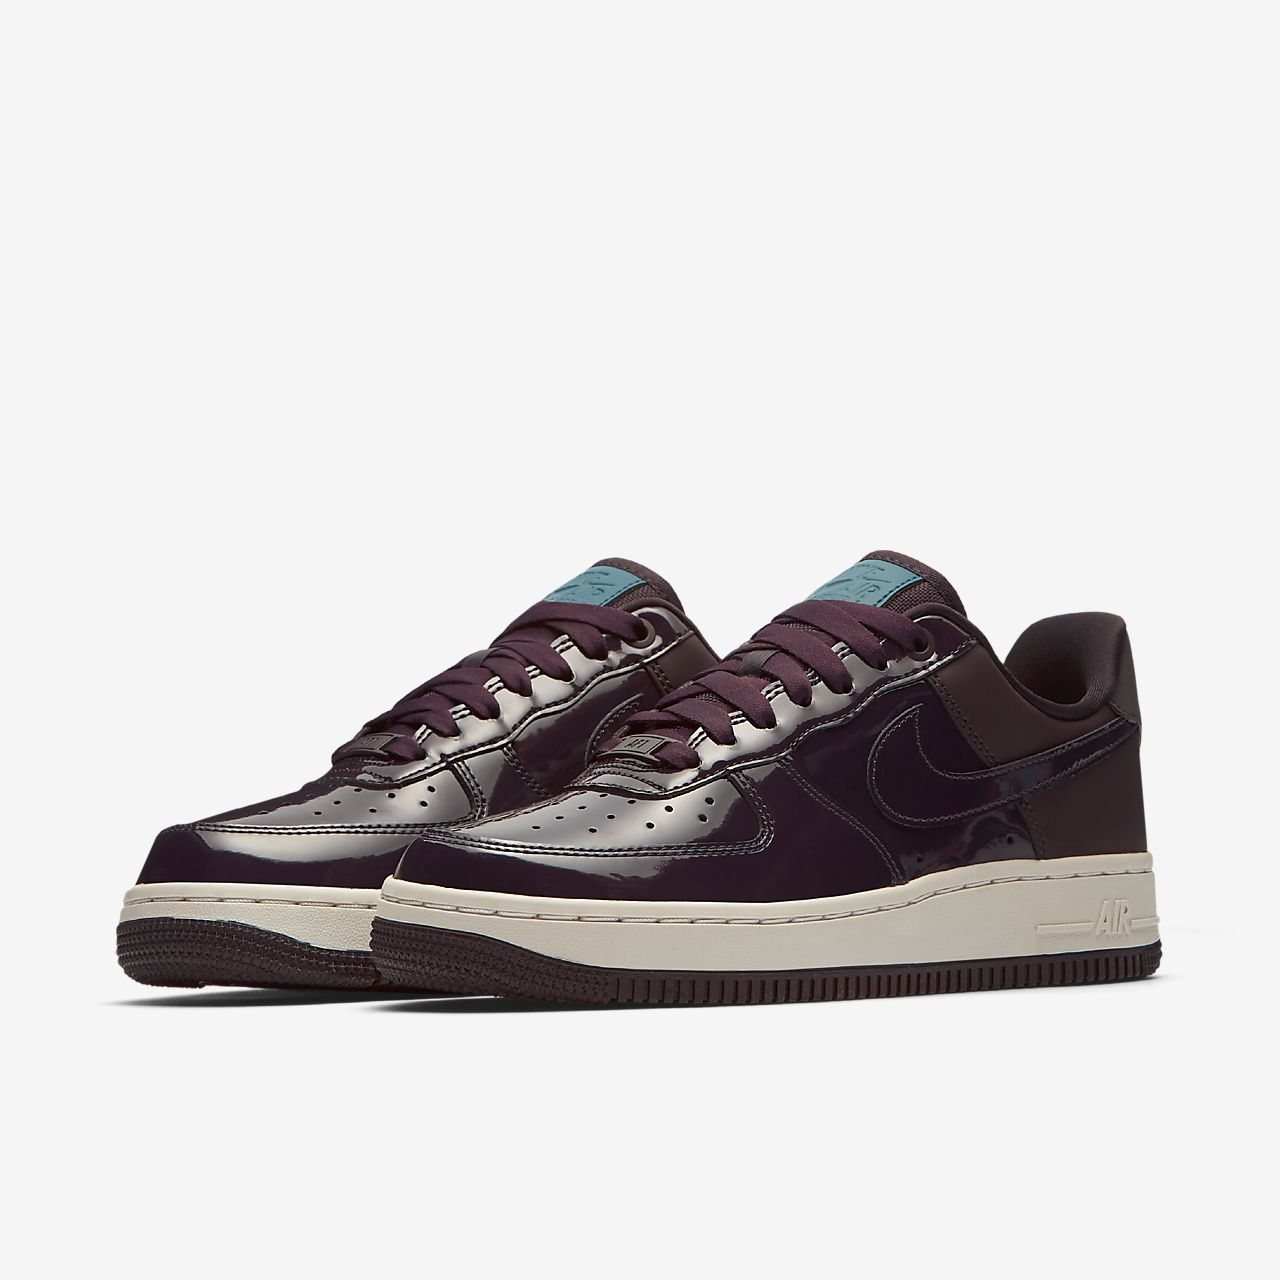 official photos f06ce afc1c zapatillas mujer nike air force 1